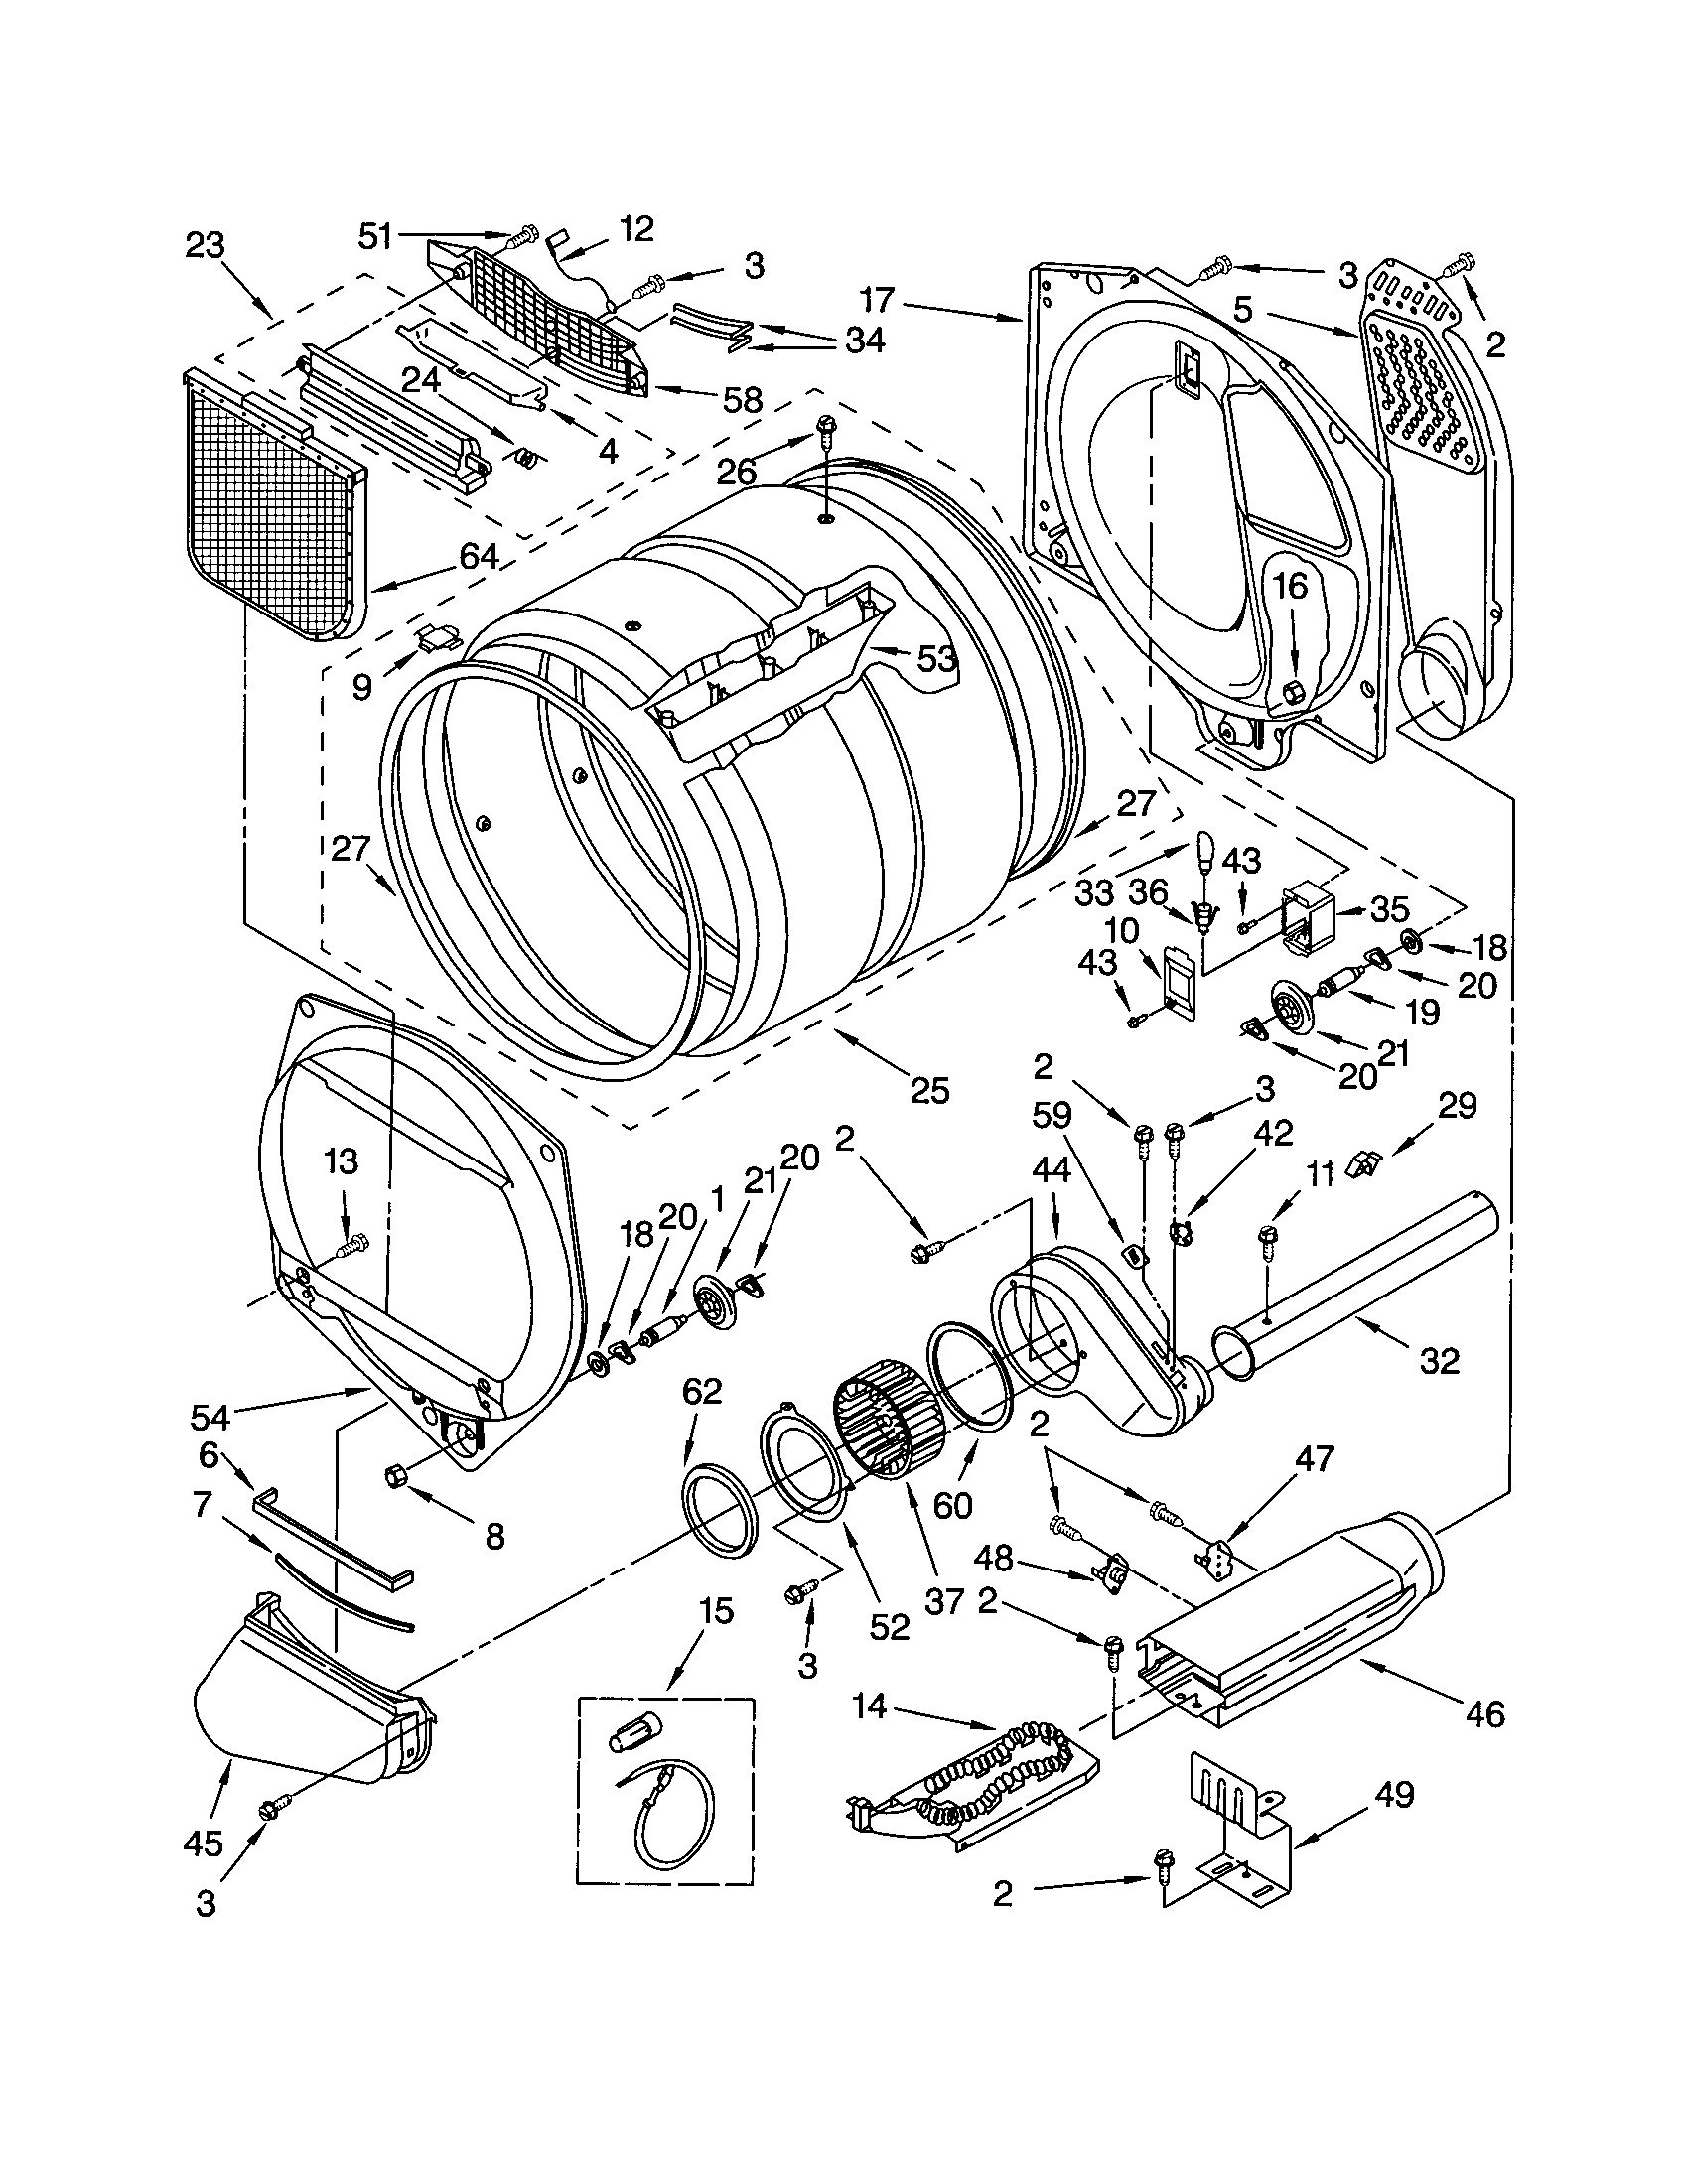 K9 2 Dryer Wiring Diagram 25 Images 3 Prong Along With Gas Oven Also Maytag Le5700xsno Whirlpool Diagrams P0203276 00003resize